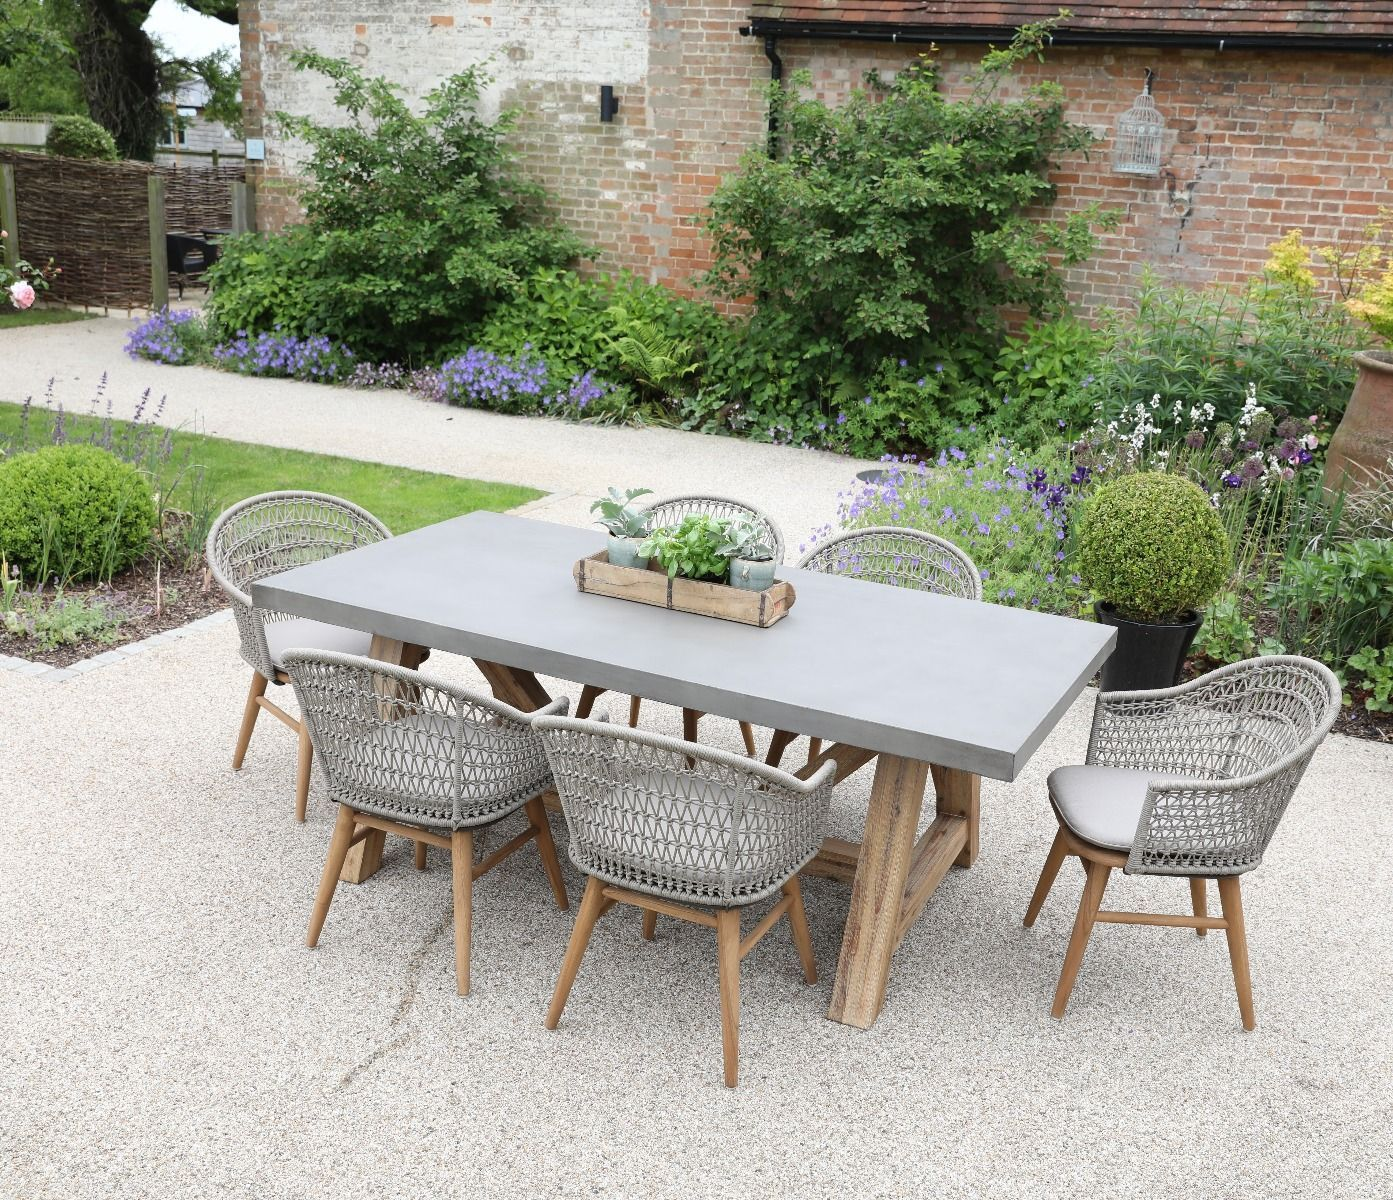 Roma Polished Concrete Outdoor Dining Table Jo Alexander Gartenmöbel Design Terrassen Tische Terrassentisch